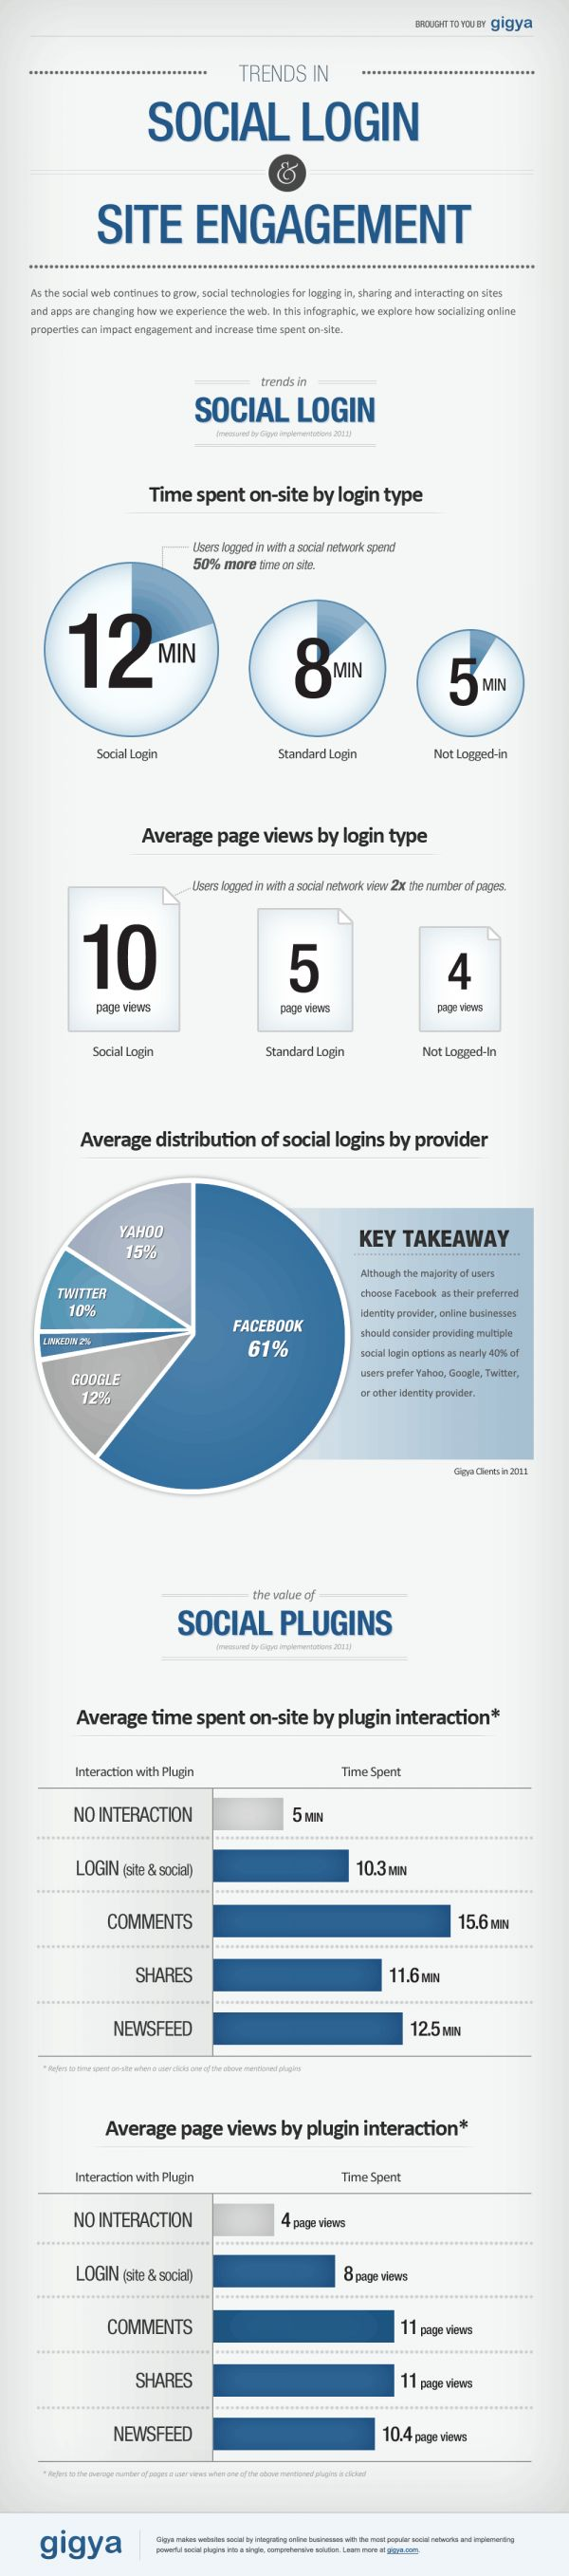 Social Login and Social Plugins Increase Page Views / Time Spent On Site